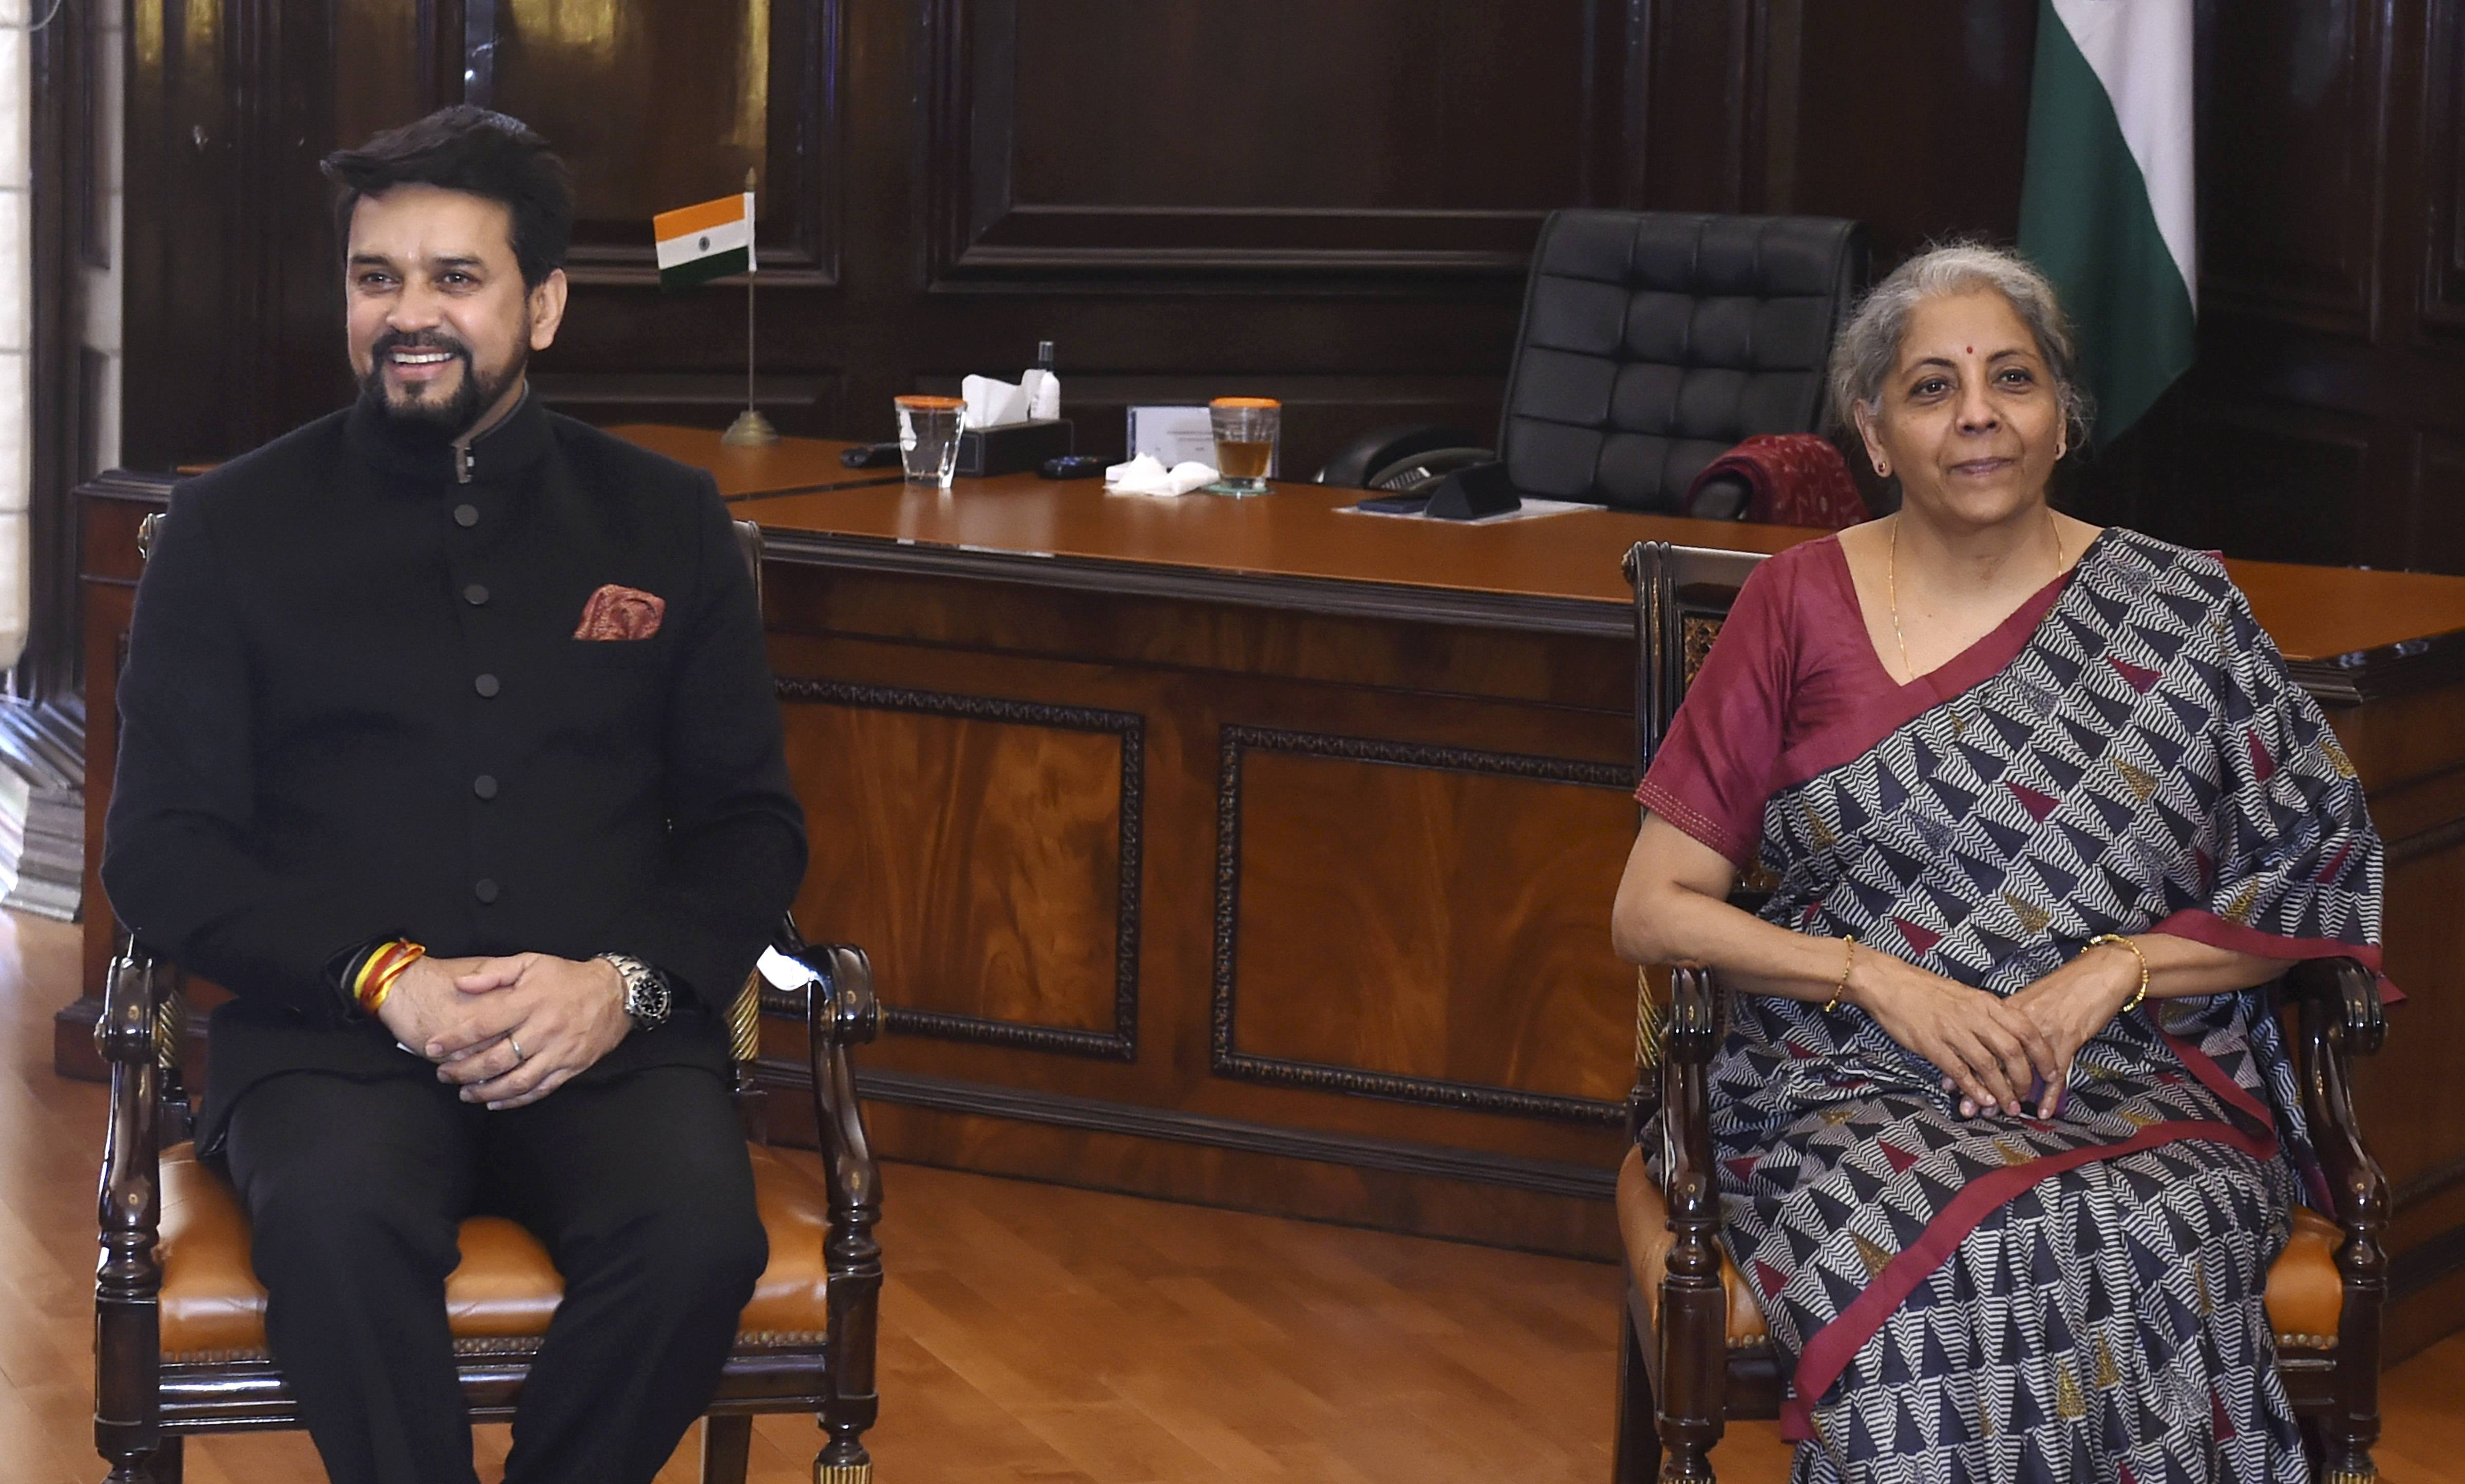 New Delhi: Finance Minister Nirmala Sitharaman along with MoS for Finance Anurag Thakur during the final touches of Union Budget 2021-22, at Finance Ministry in New Delhi, Sunday, Jan. 31, 2021. (PTI Photo/Shahbaz Khan)(PTI01_31_2021_000197B)